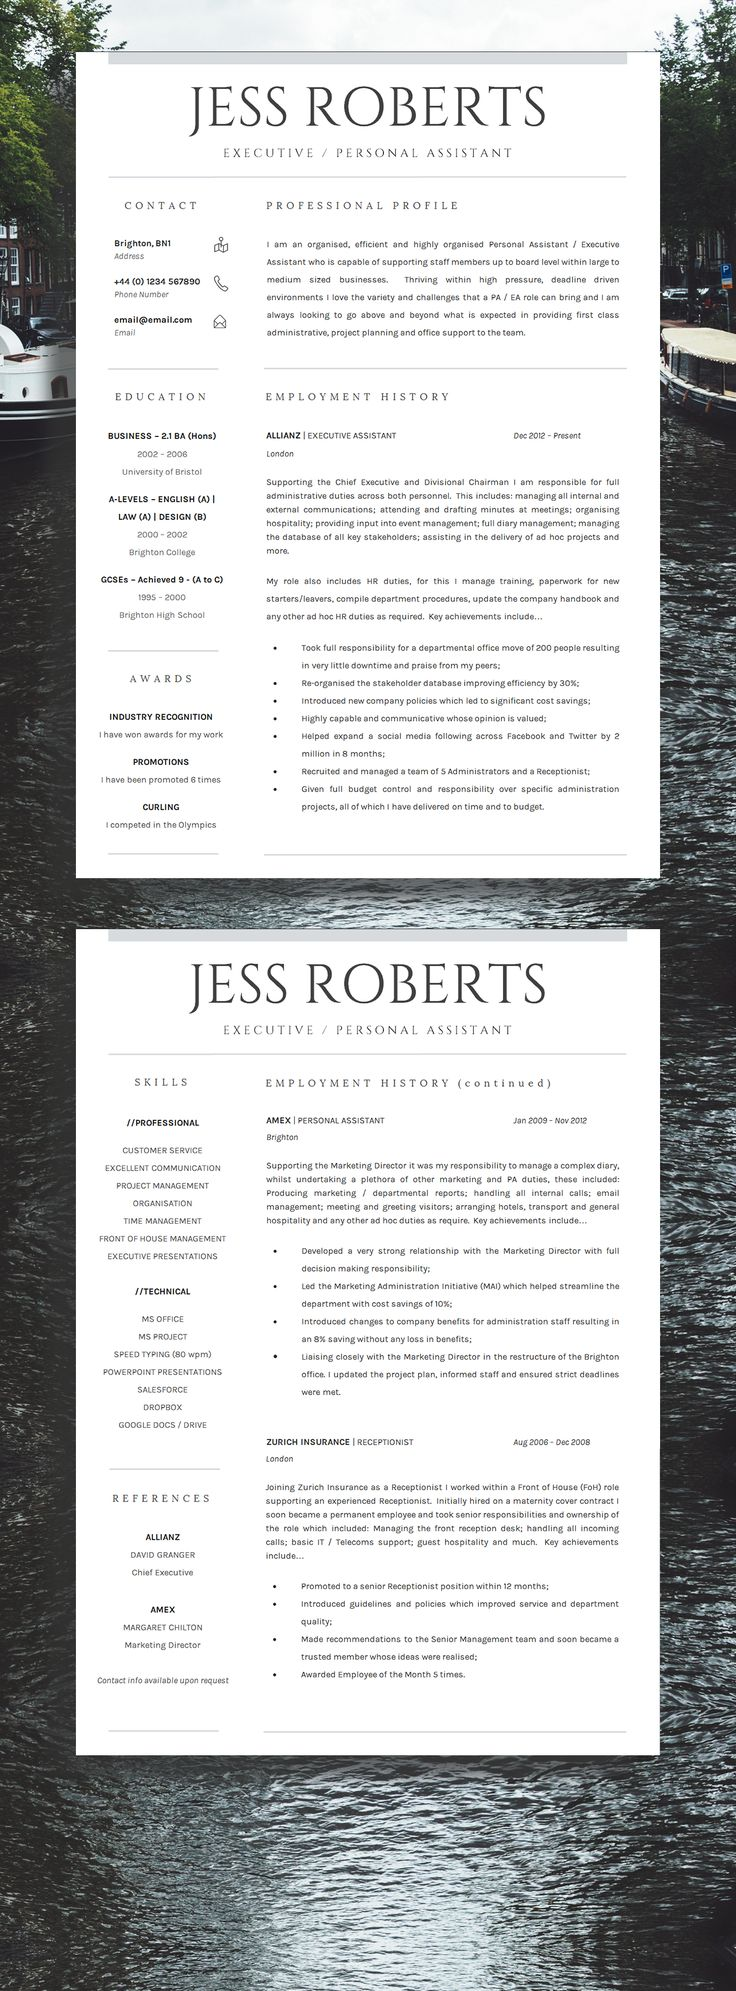 receptionist sample resume%0A Professional Curriculum Vitae   CV   Professional Resume Template  Get  More Interviews